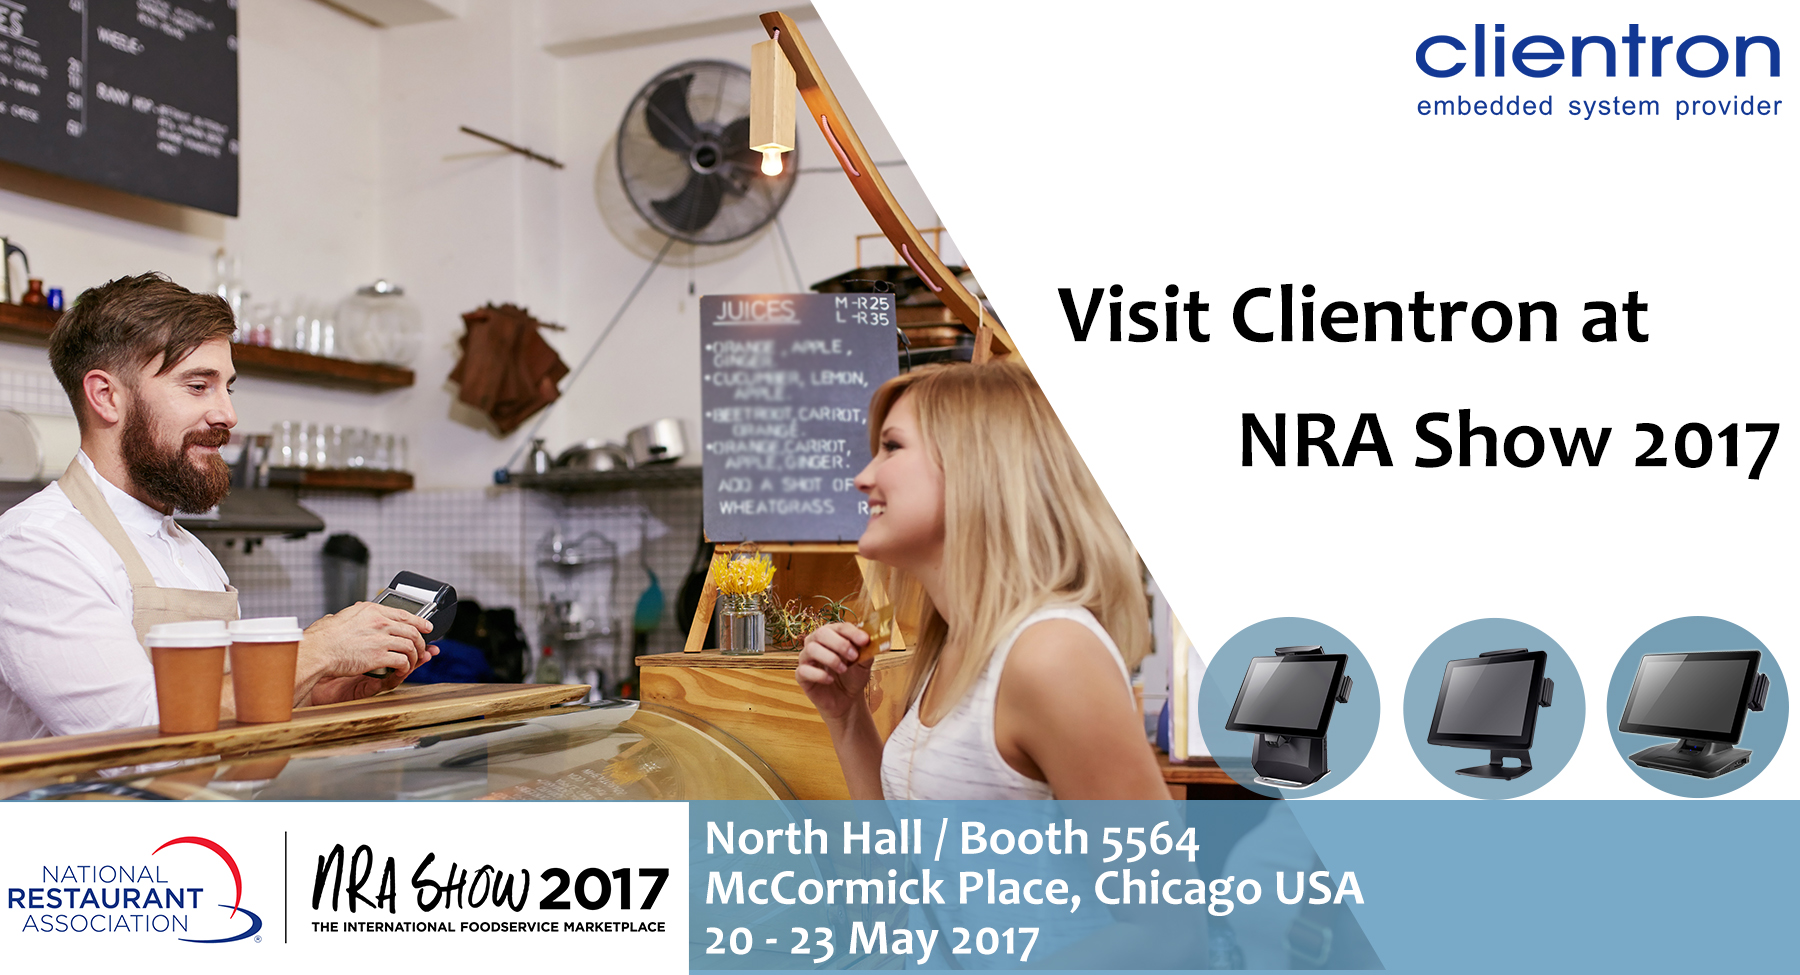 Visit Clientron at NRA Show 2017